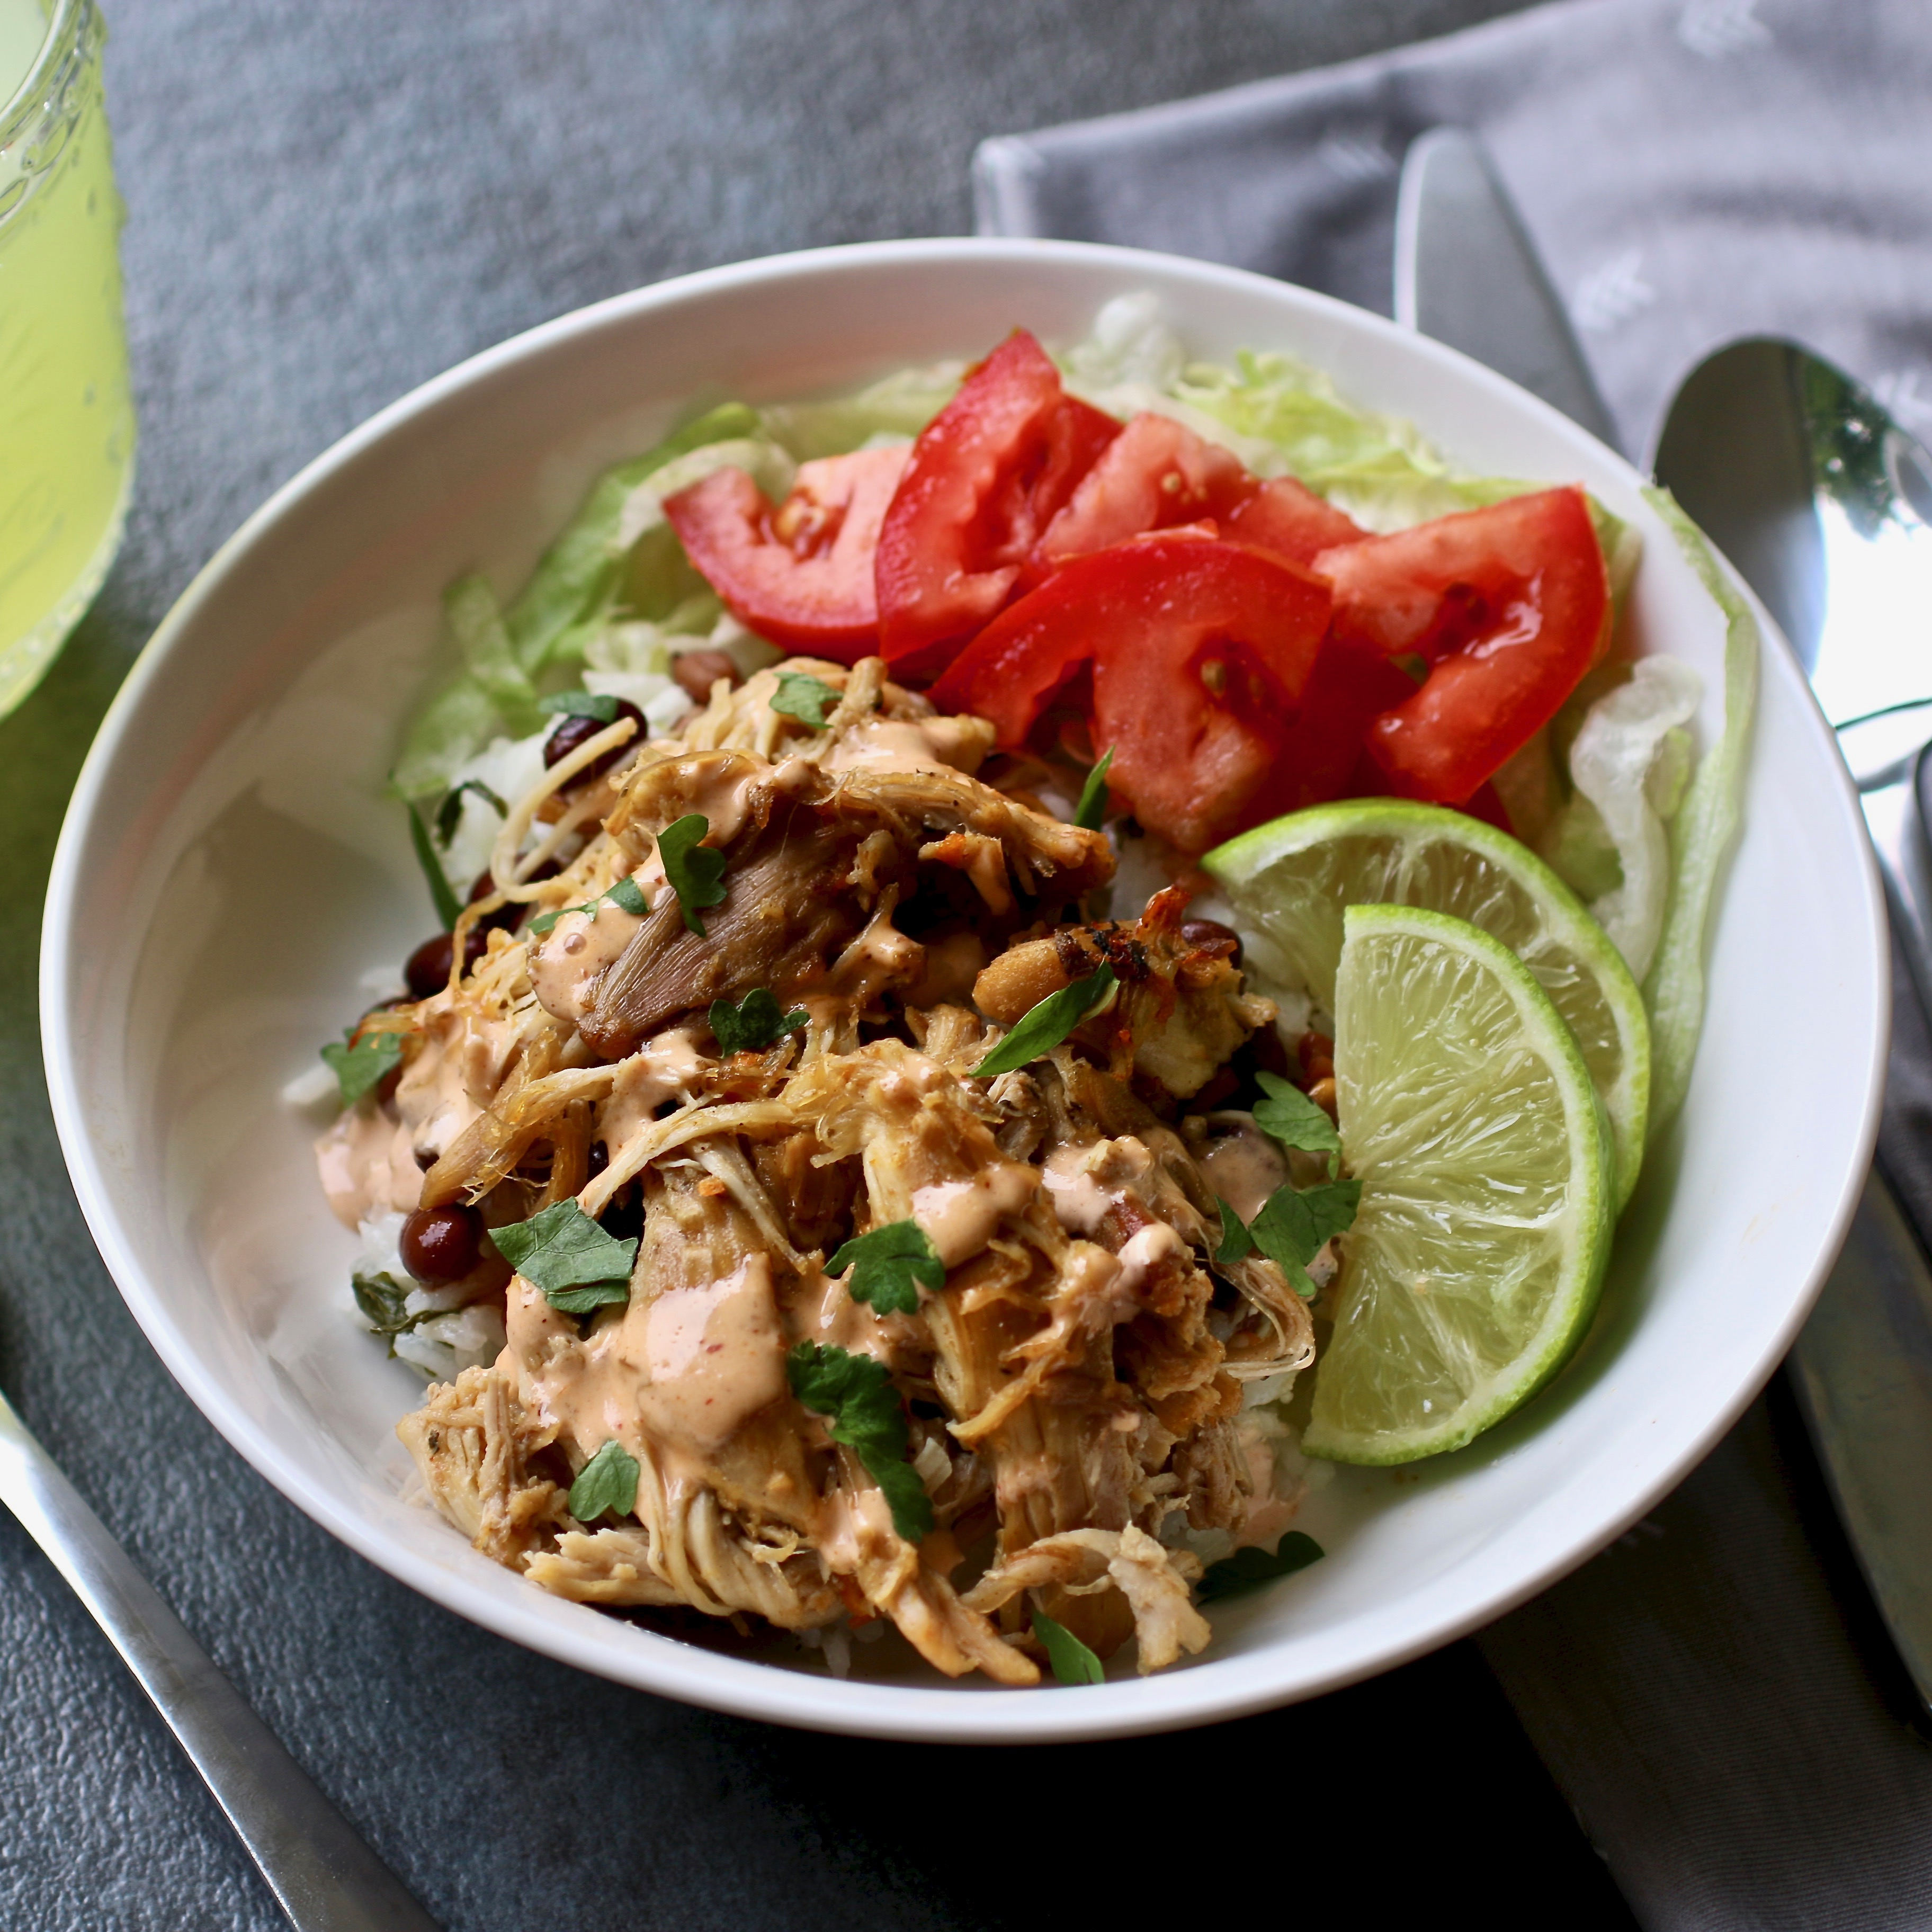 """""""Chicken carnitas made in the pressure cooker are quick and easy!"""" says Margo. """"We crisp them up in the broiler, and they are perfect to meal-prep and enjoy for the week! Serve with tortillas, diced onions, chopped cilantro, sauteed cabbage, lime wedges, and anything else you like!"""""""